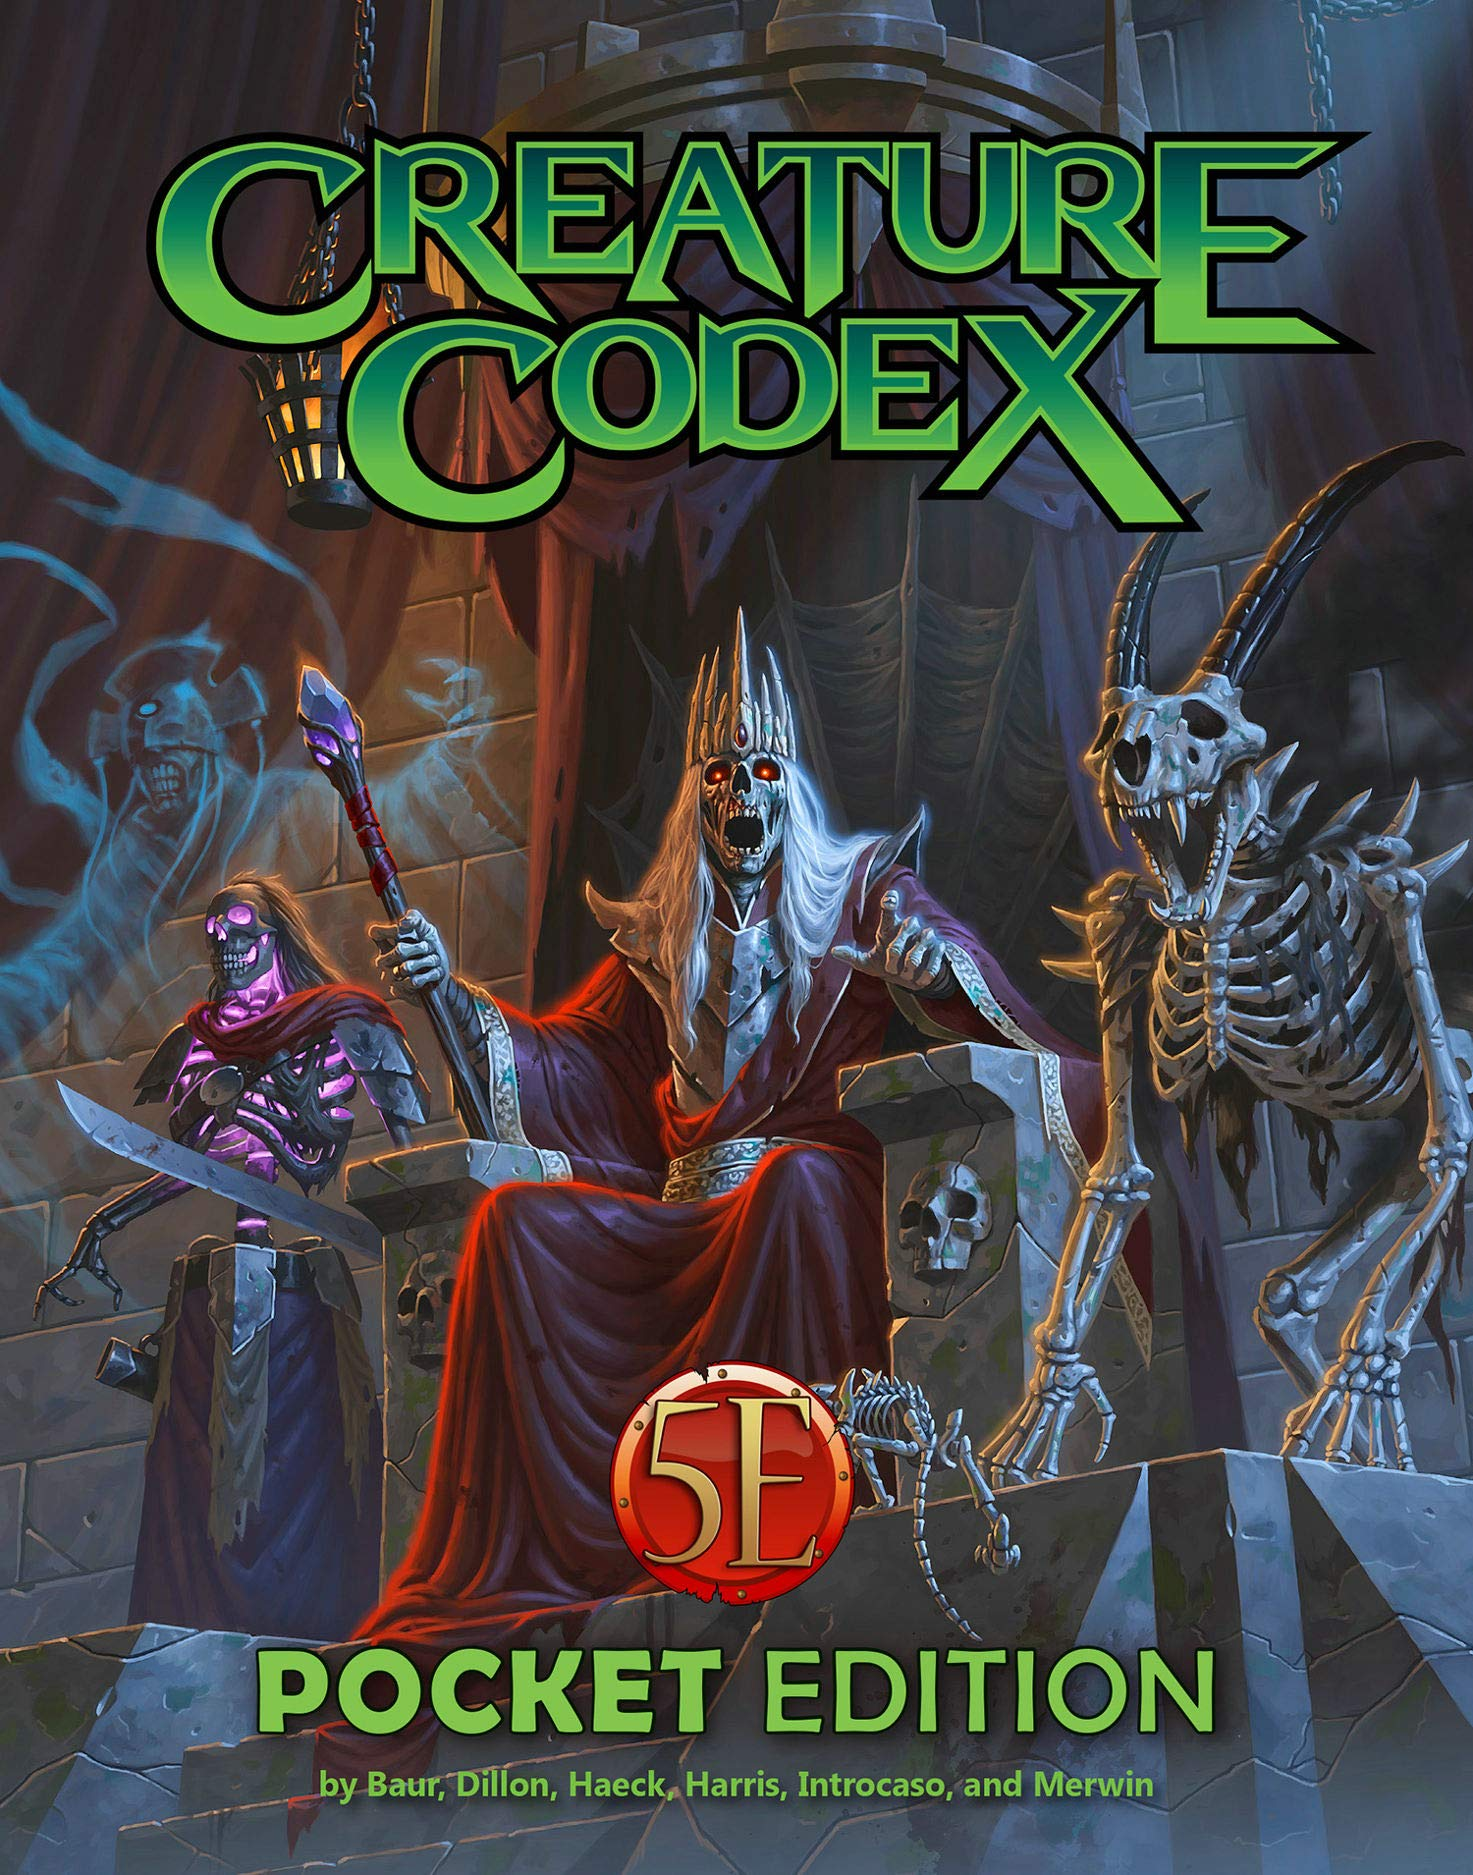 Kobold Press Creature Codex Pocket Edition PB RPG Book | Digital Heroes